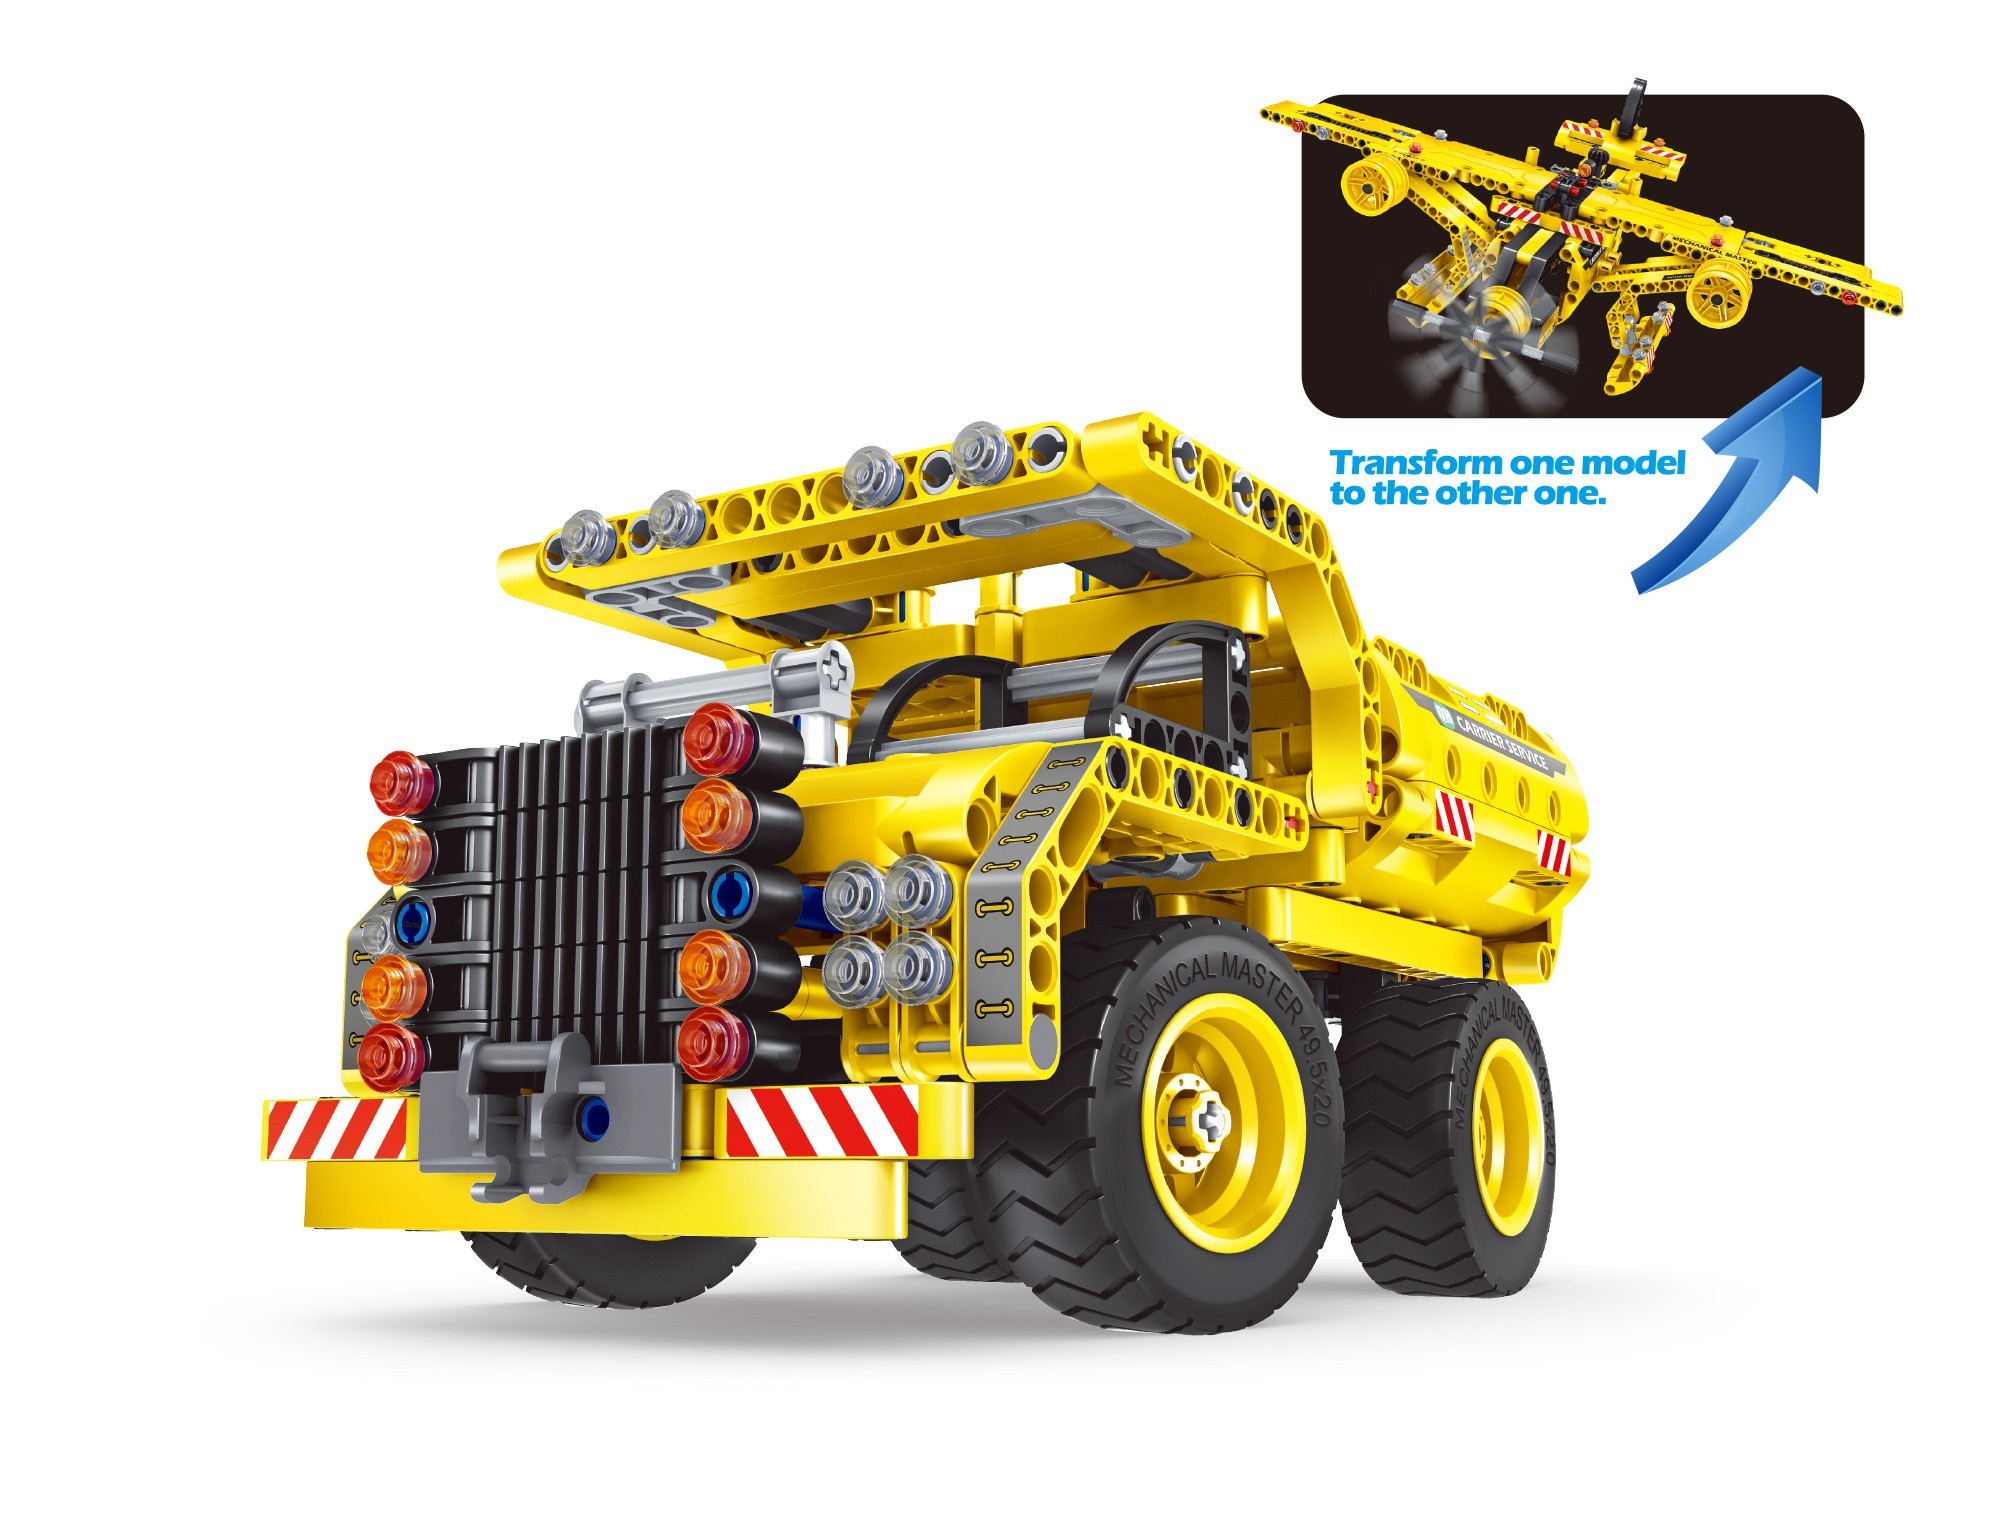 Building Blocks Bricks Construction Kit STEM Toy (Dump Truck), 361pcs